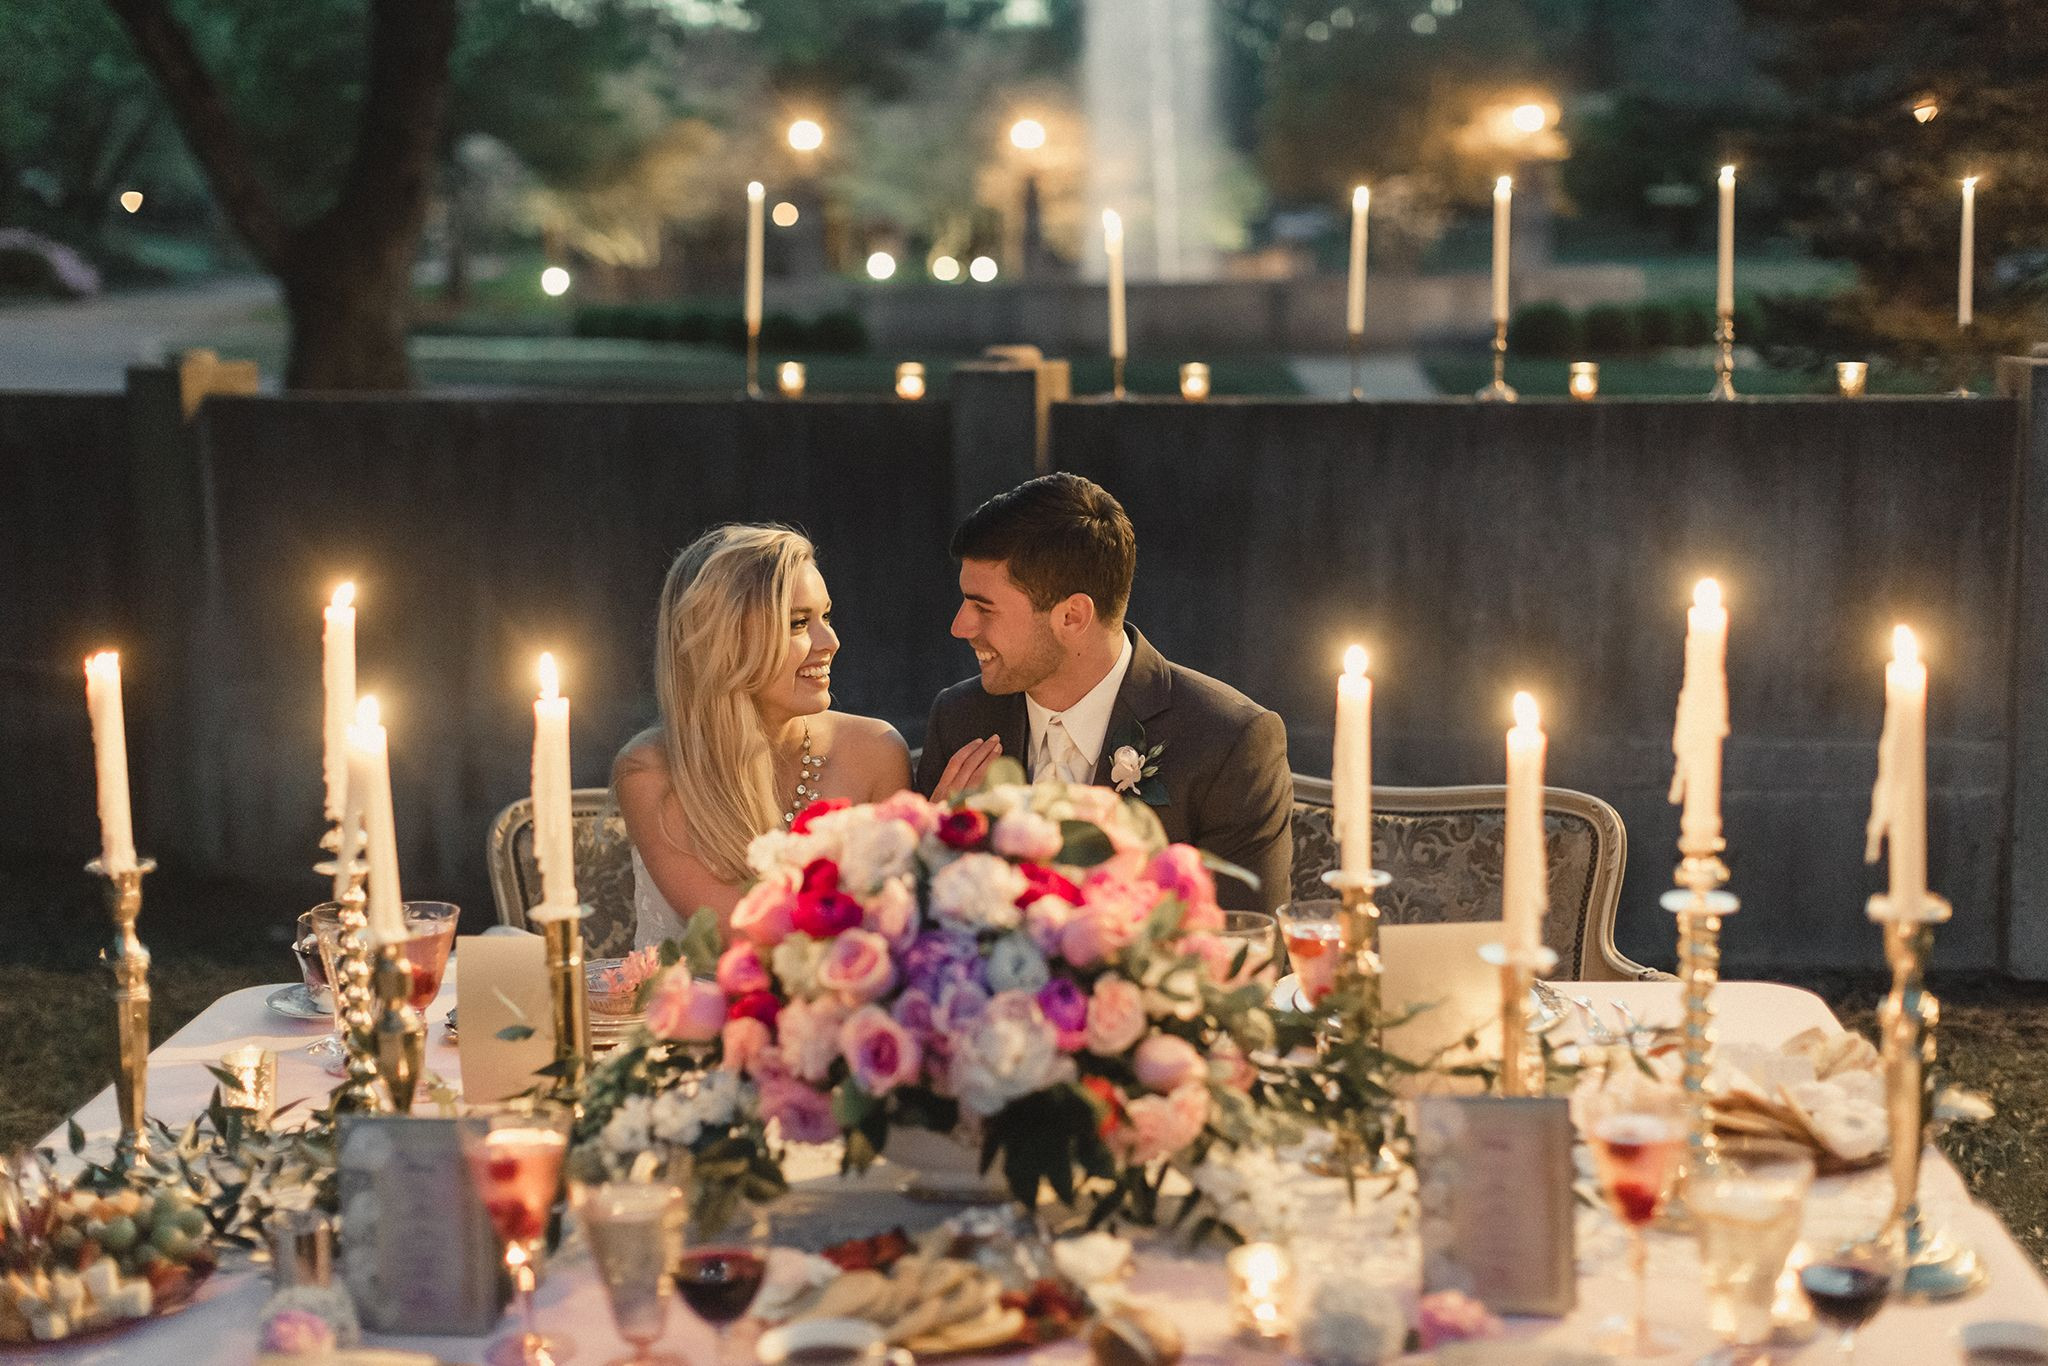 light up rocks for vases of having an outdoor wedding reception light up the night with plenty for having an outdoor wedding reception light up the night with plenty of candles